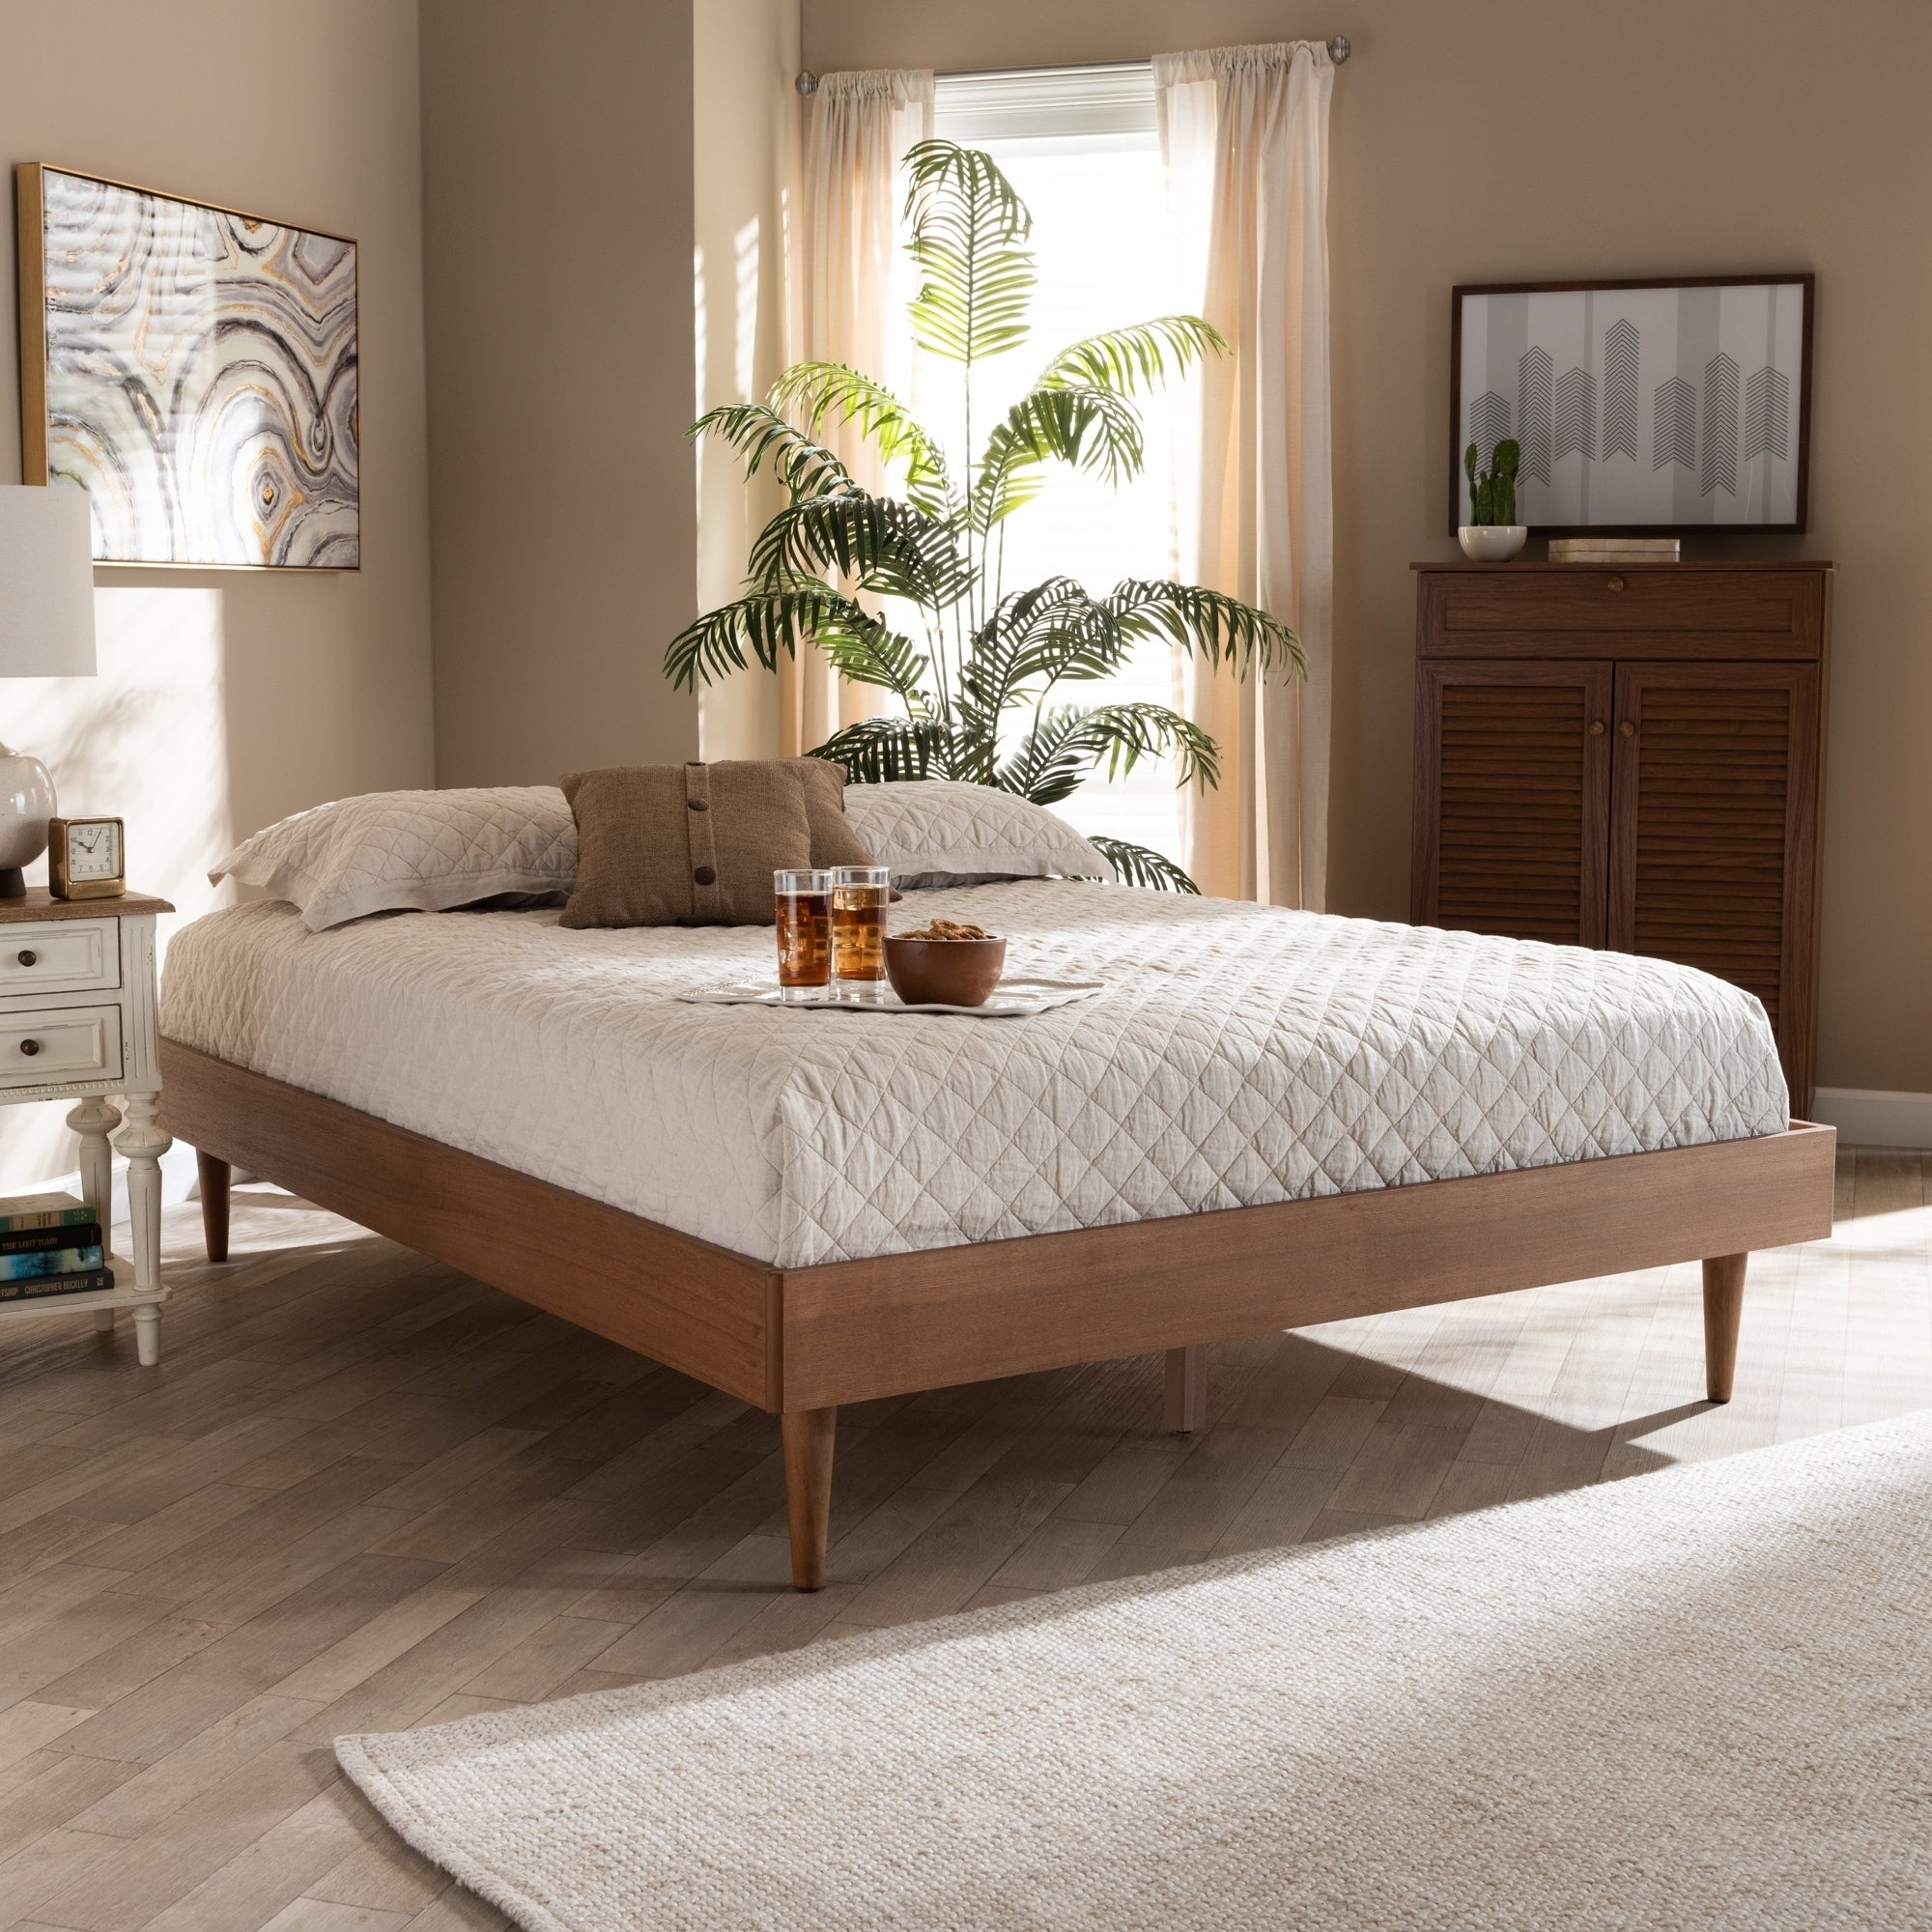 Shop Black Friday Deals On Carson Carrington Banga Mid Century Modern Wood Bed Frame Overstock 29065431